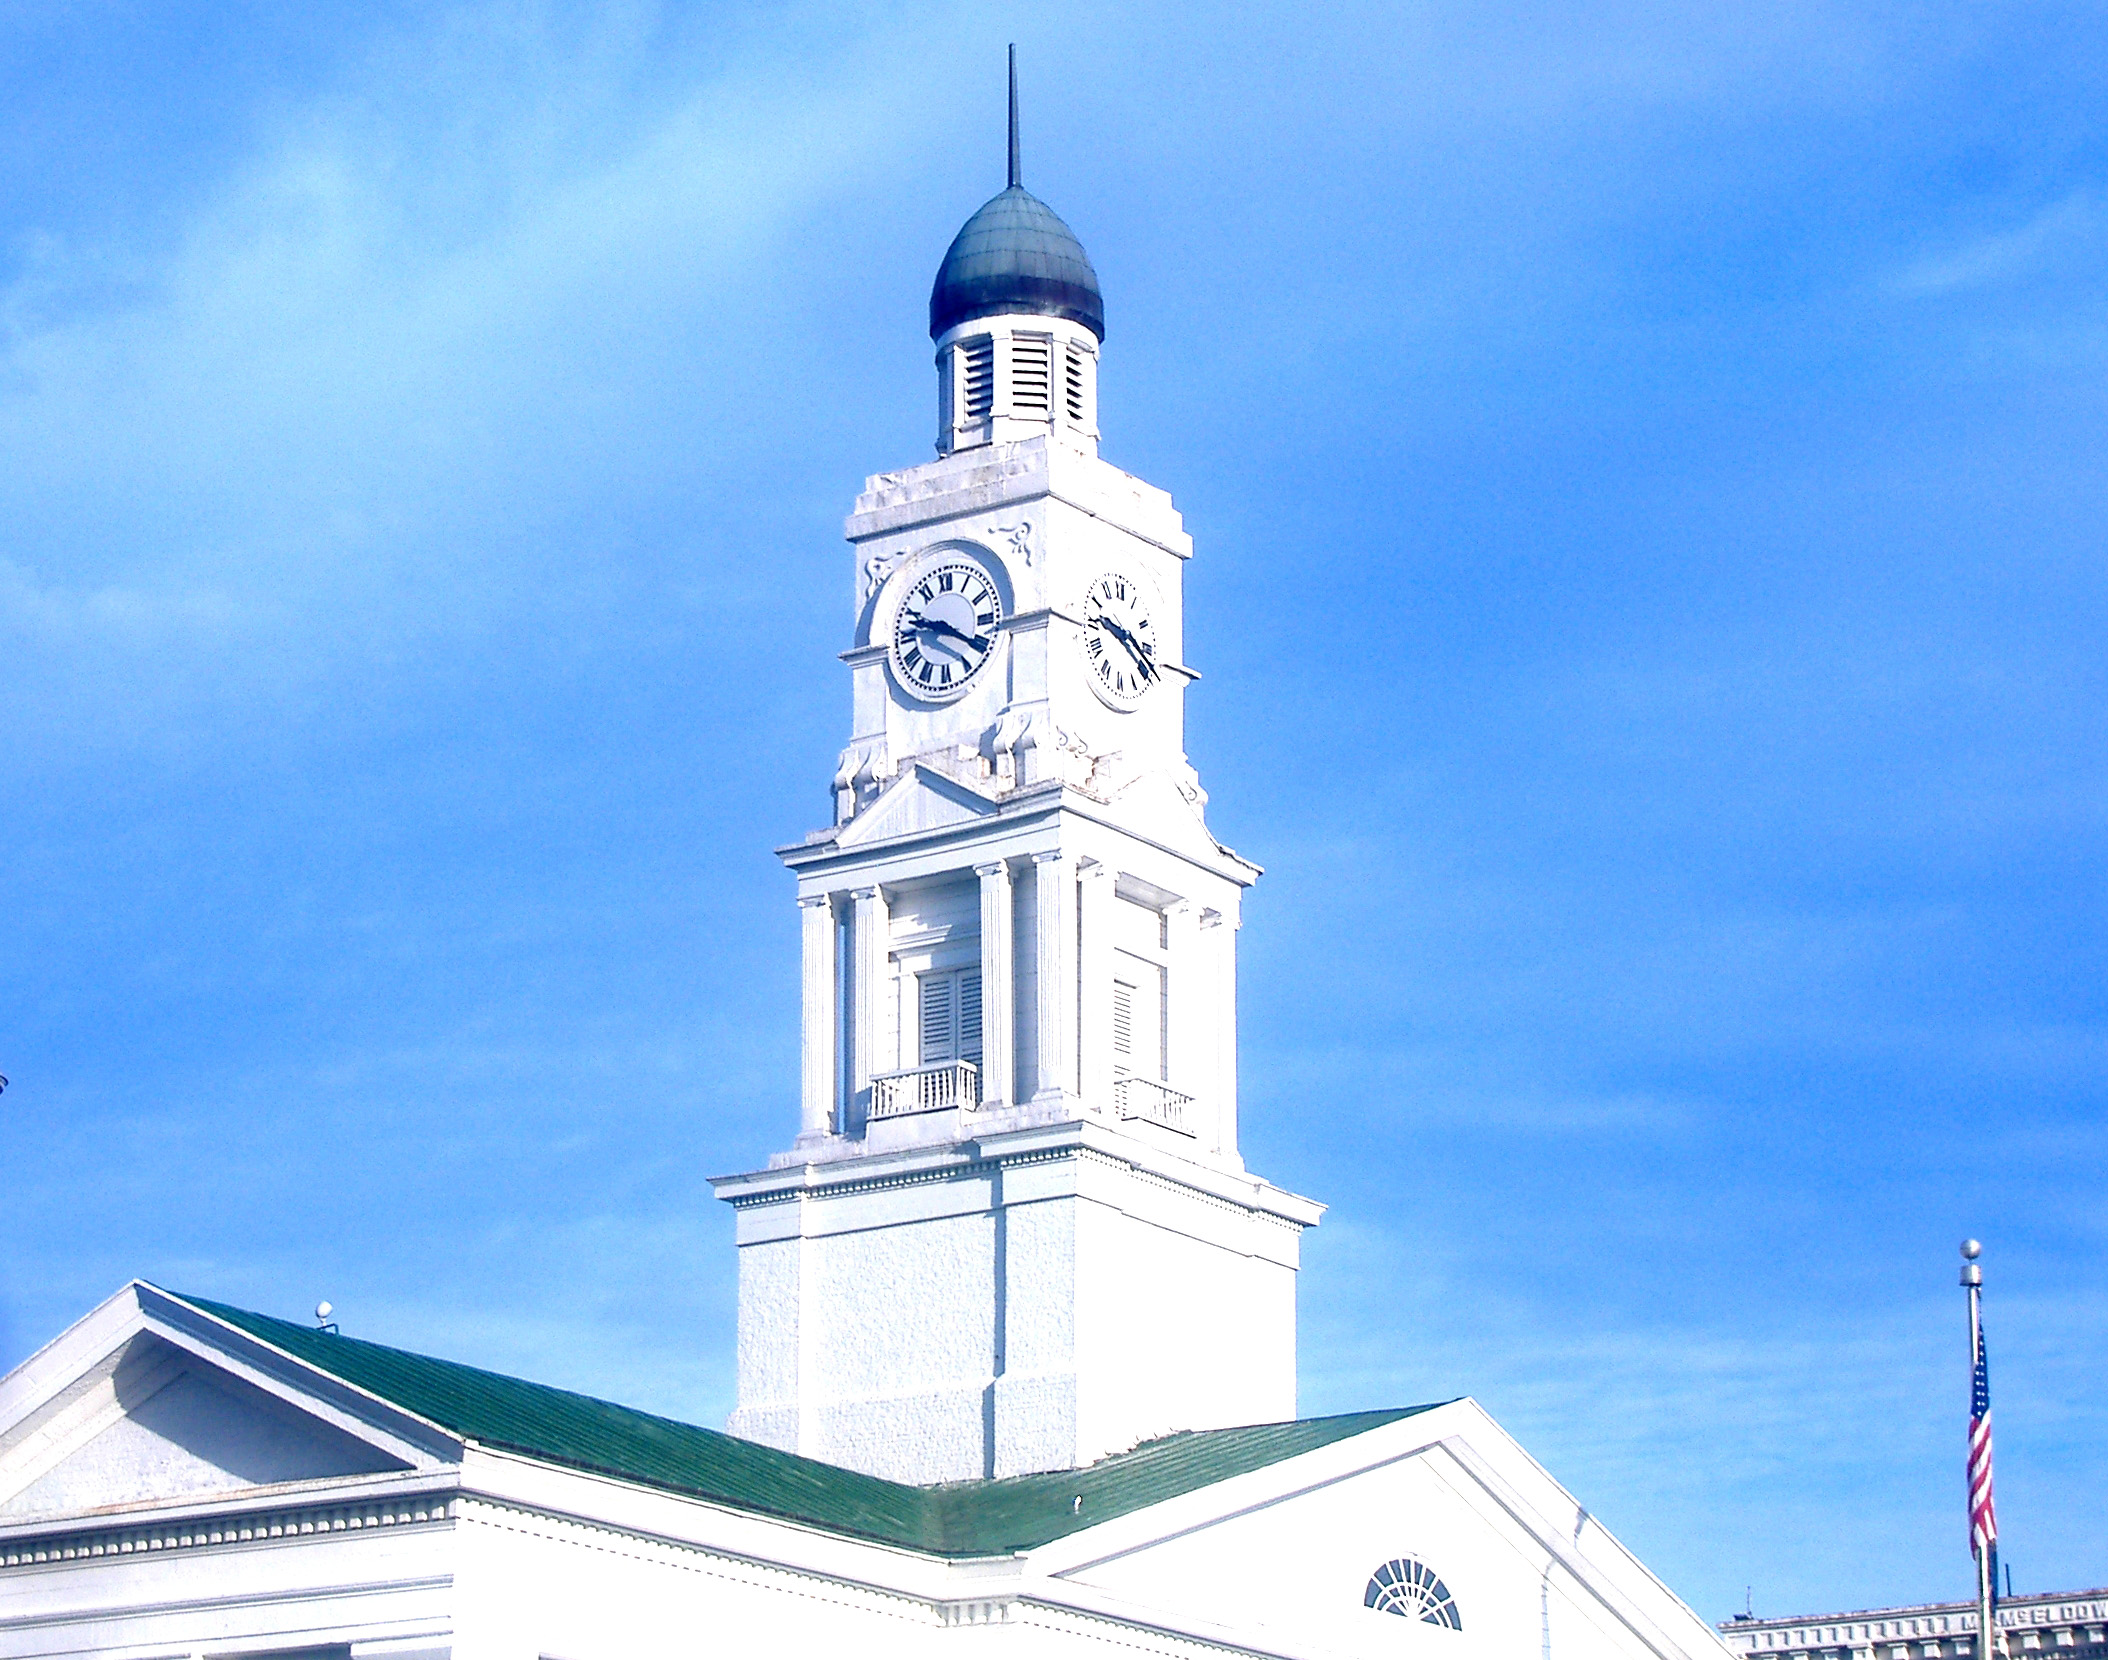 The Clark County Court House clock in Winchester, Kentucky